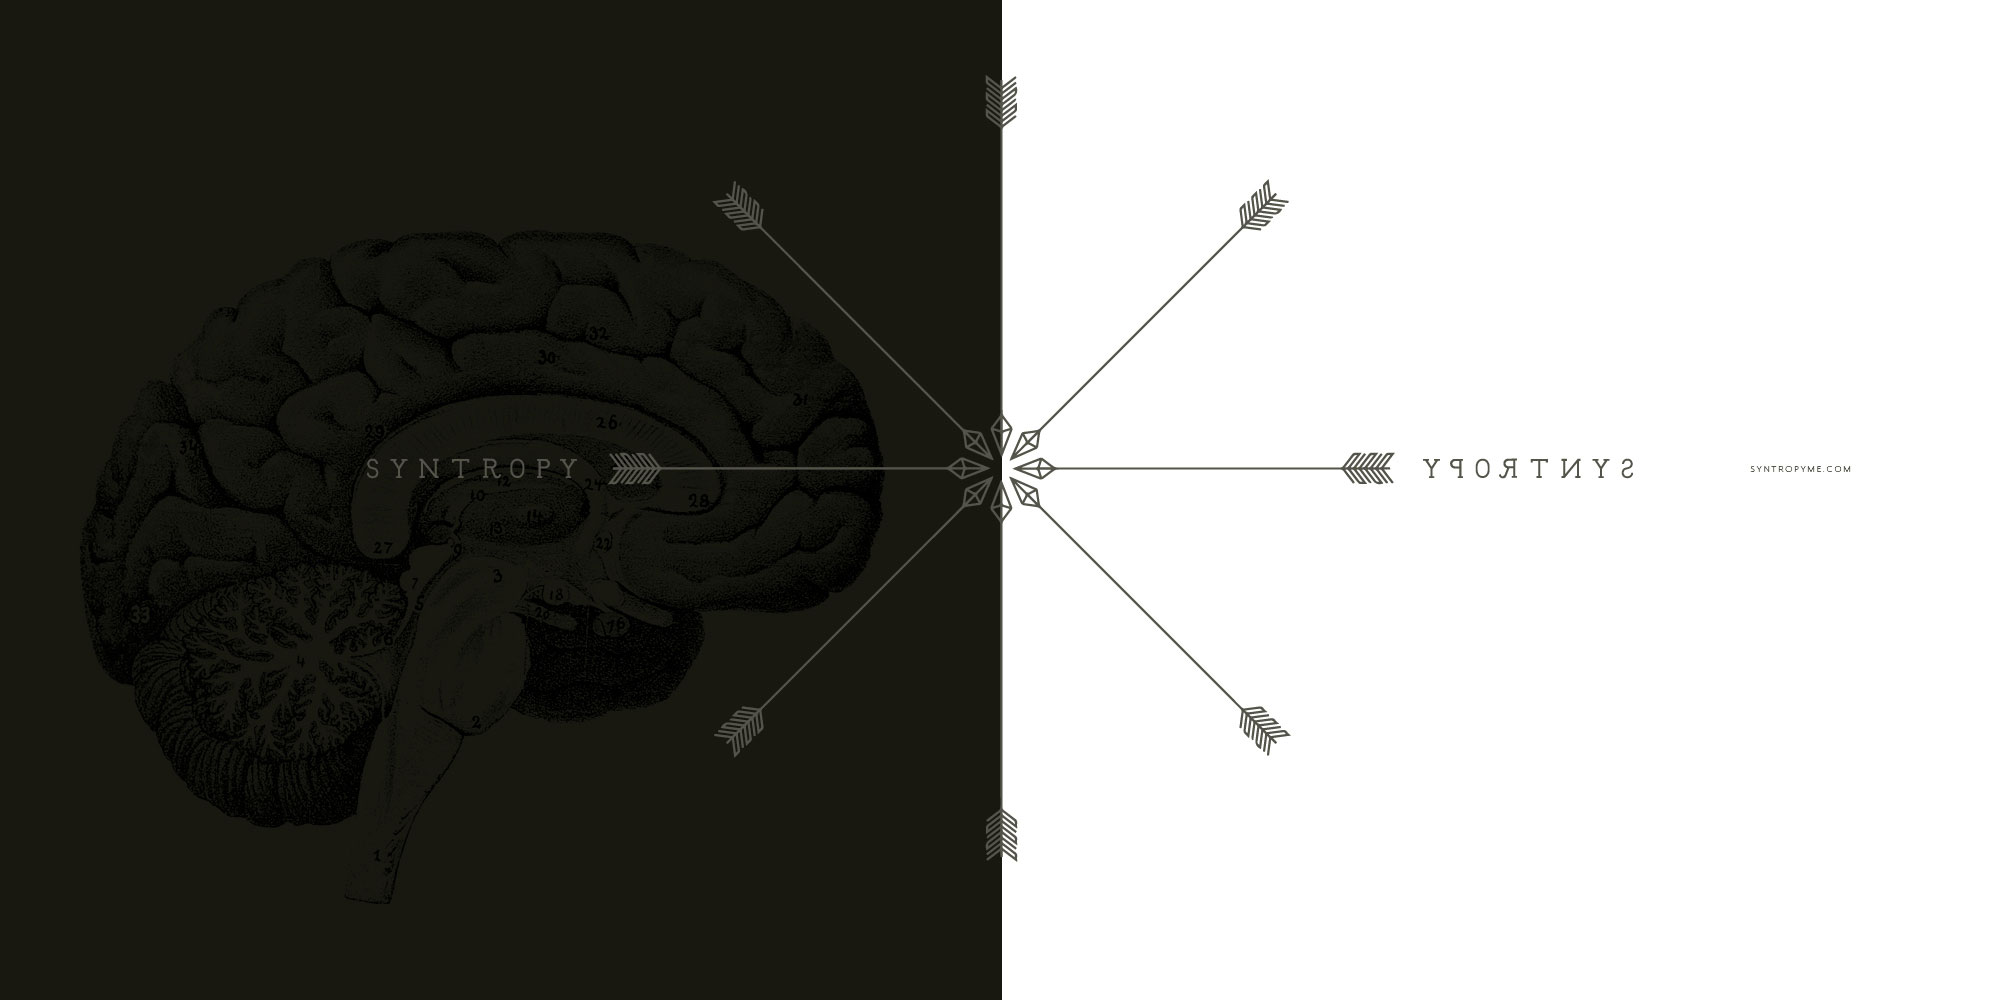 Syntropy Identity and Branding